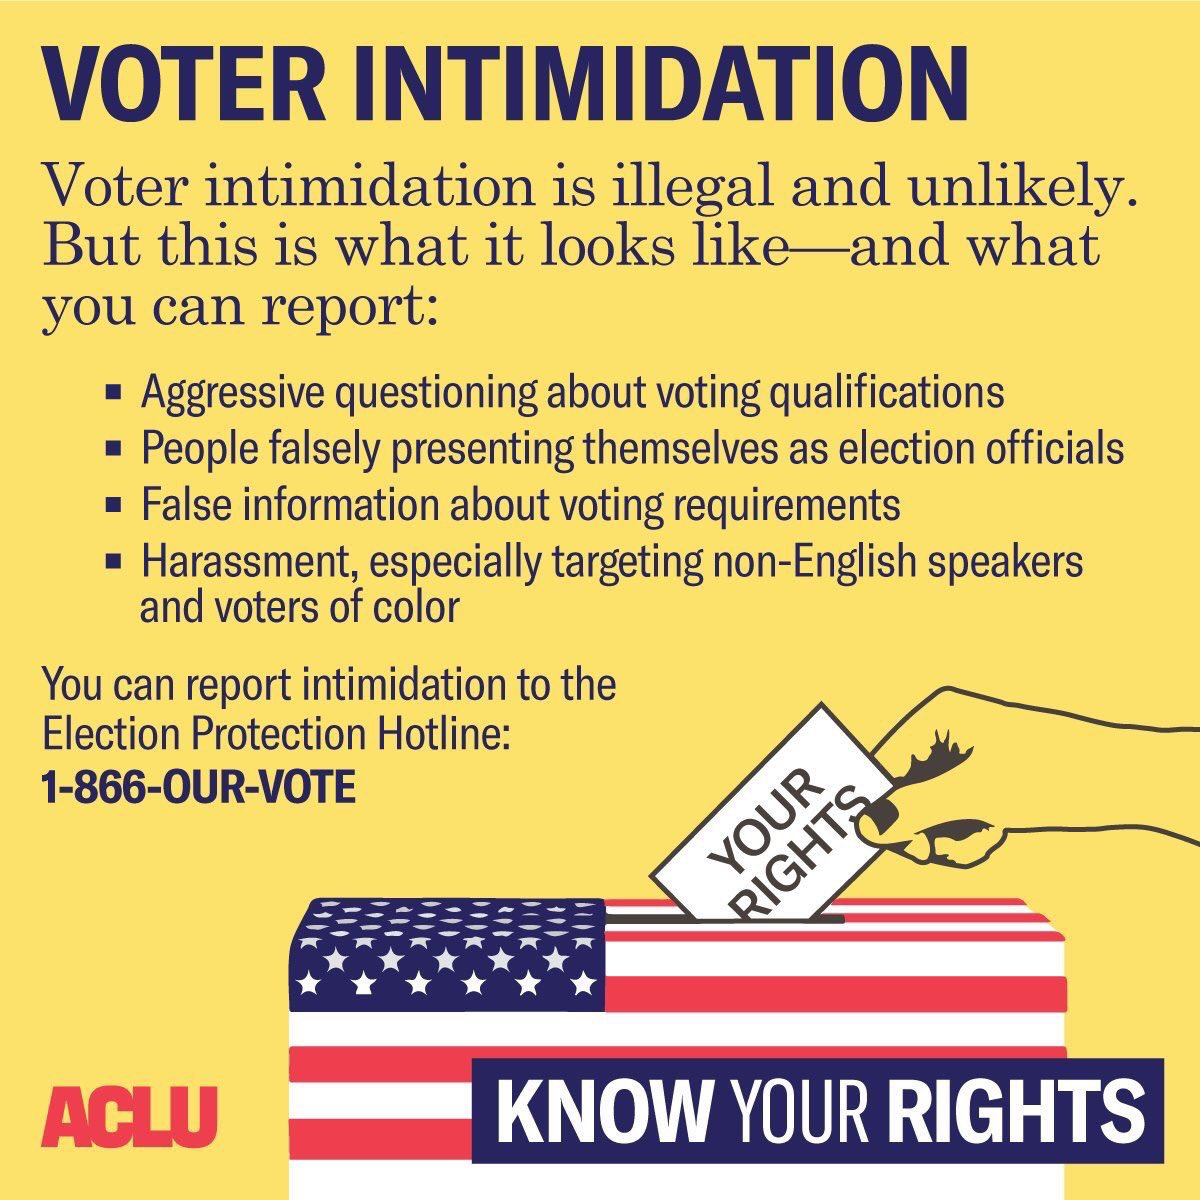 Know your rights when voting. #ElectionDay